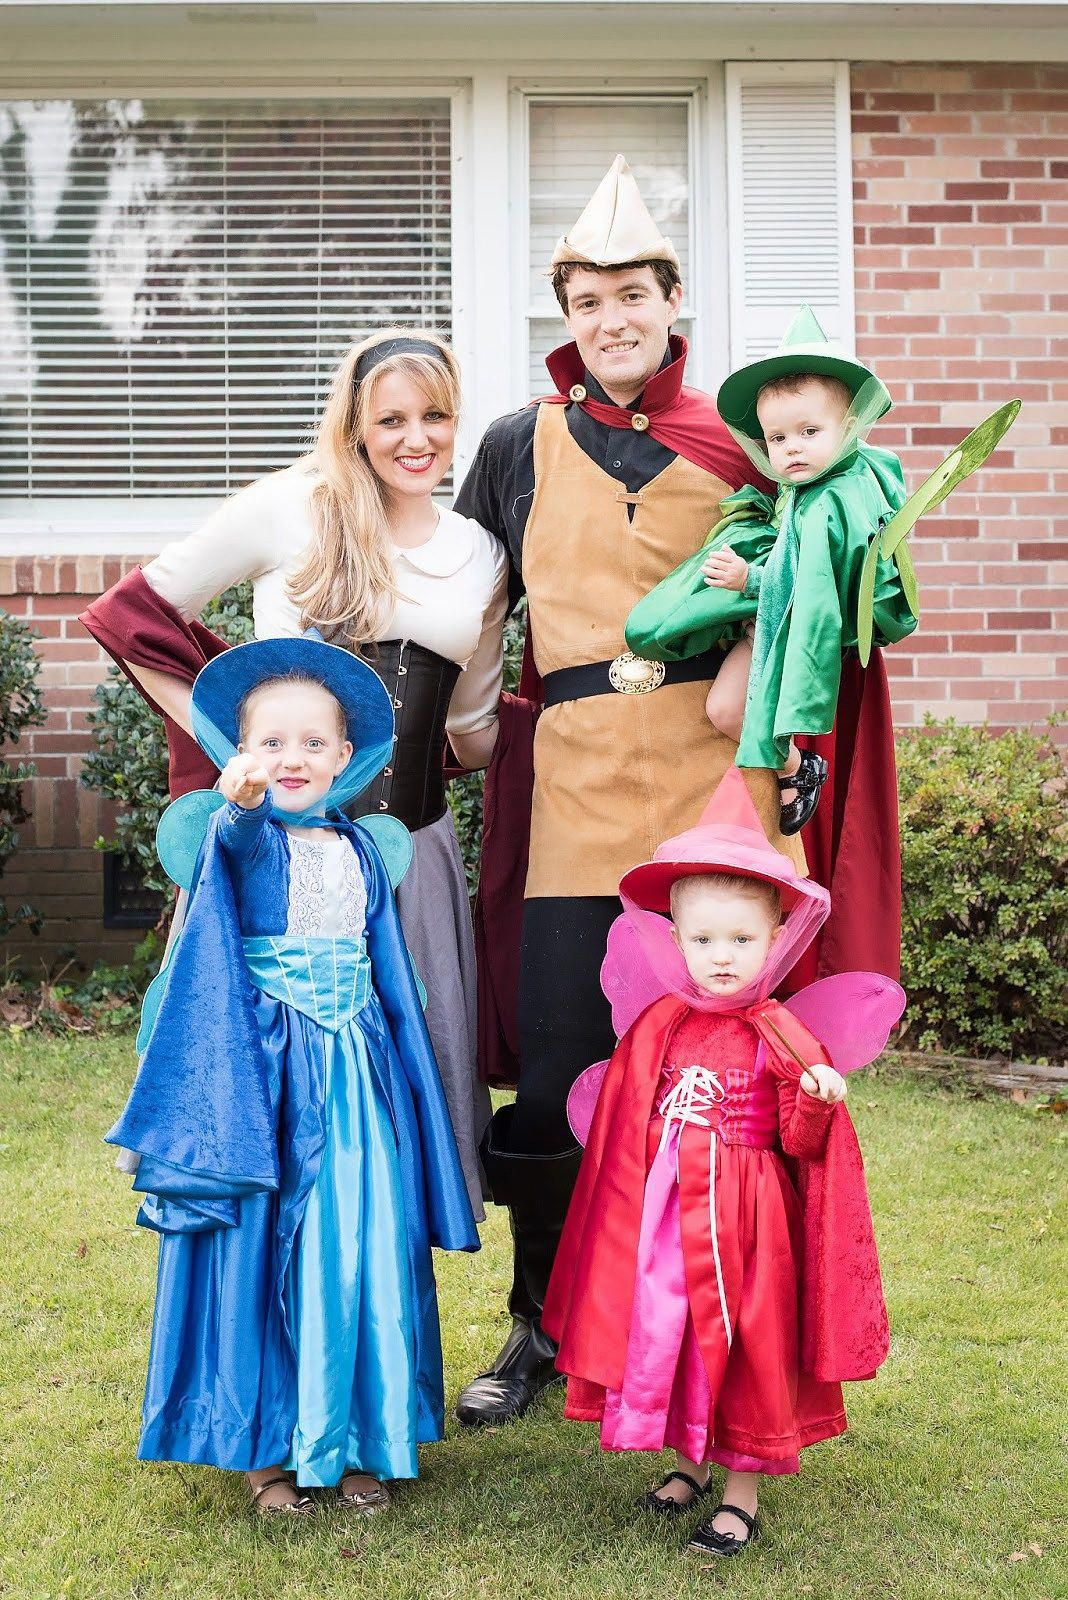 Best Halloween costumes for Family and Kids, Sleeping